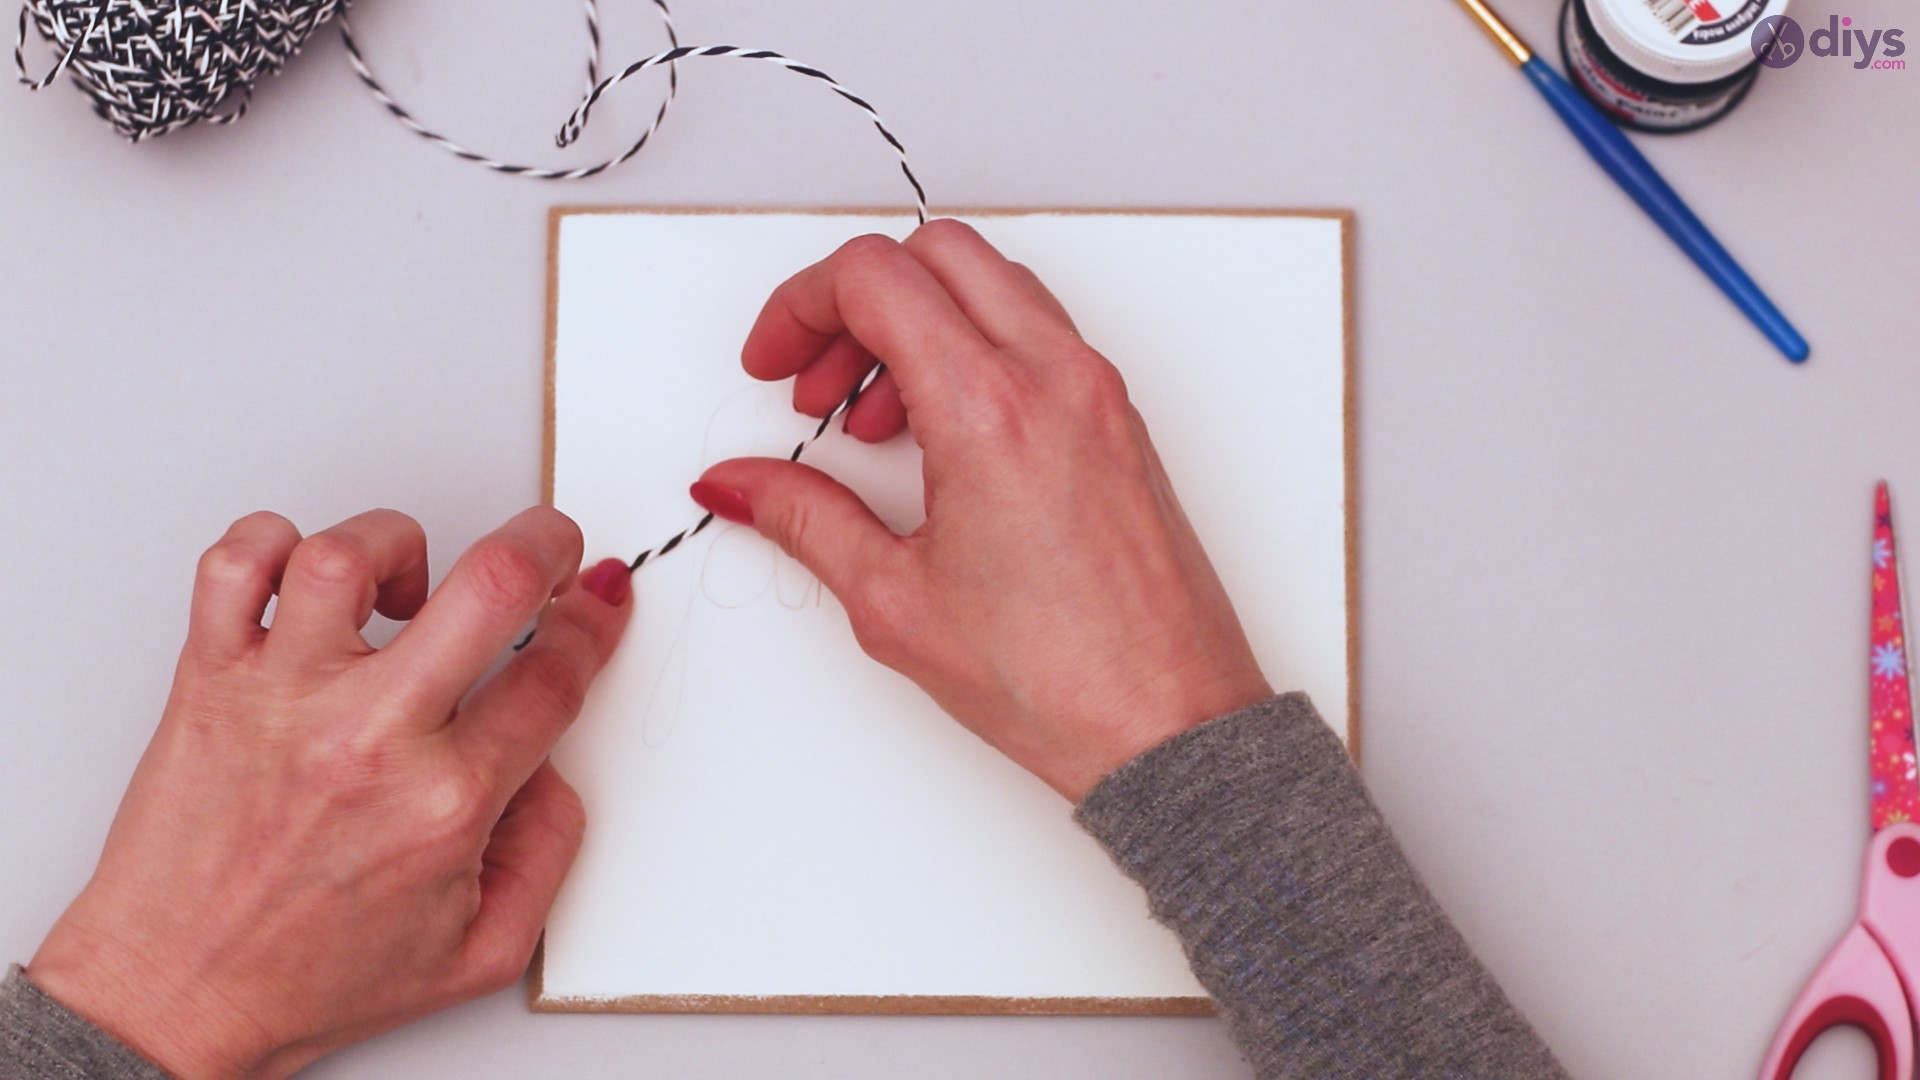 Twine string wall decor diy simple project (8)